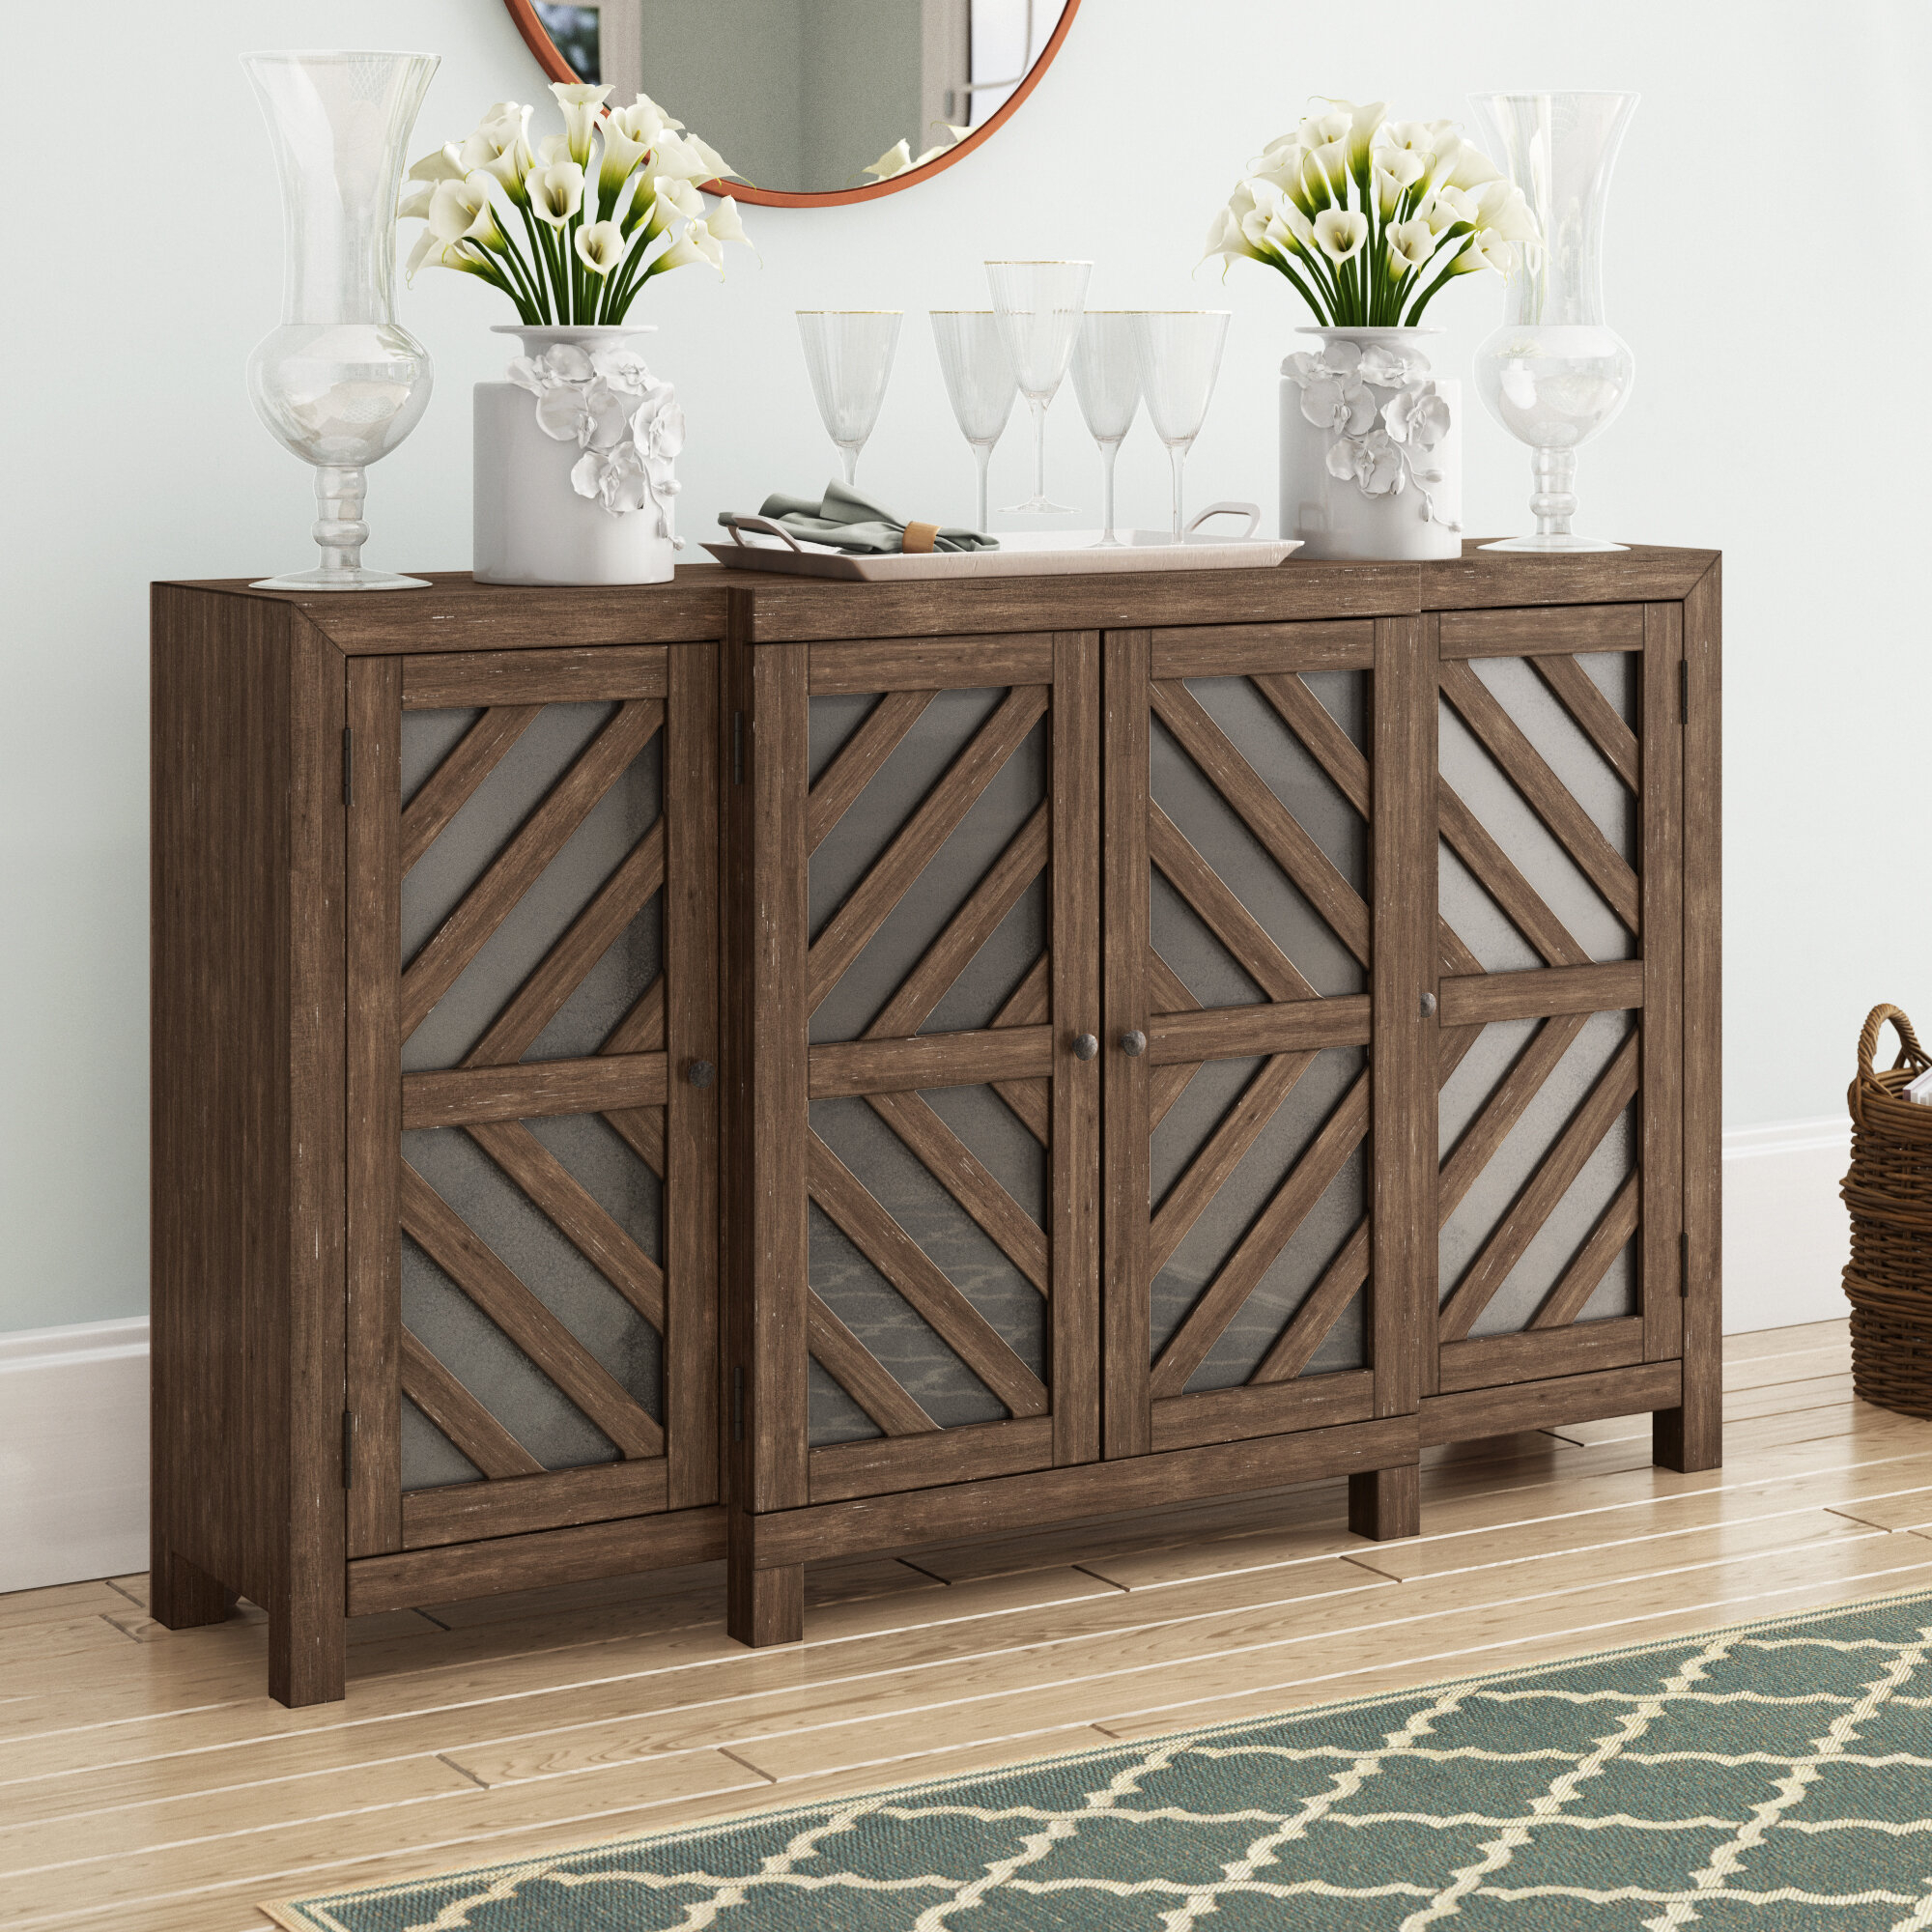 60 Inch Credenza | Wayfair For Senda Credenzas (Gallery 5 of 30)